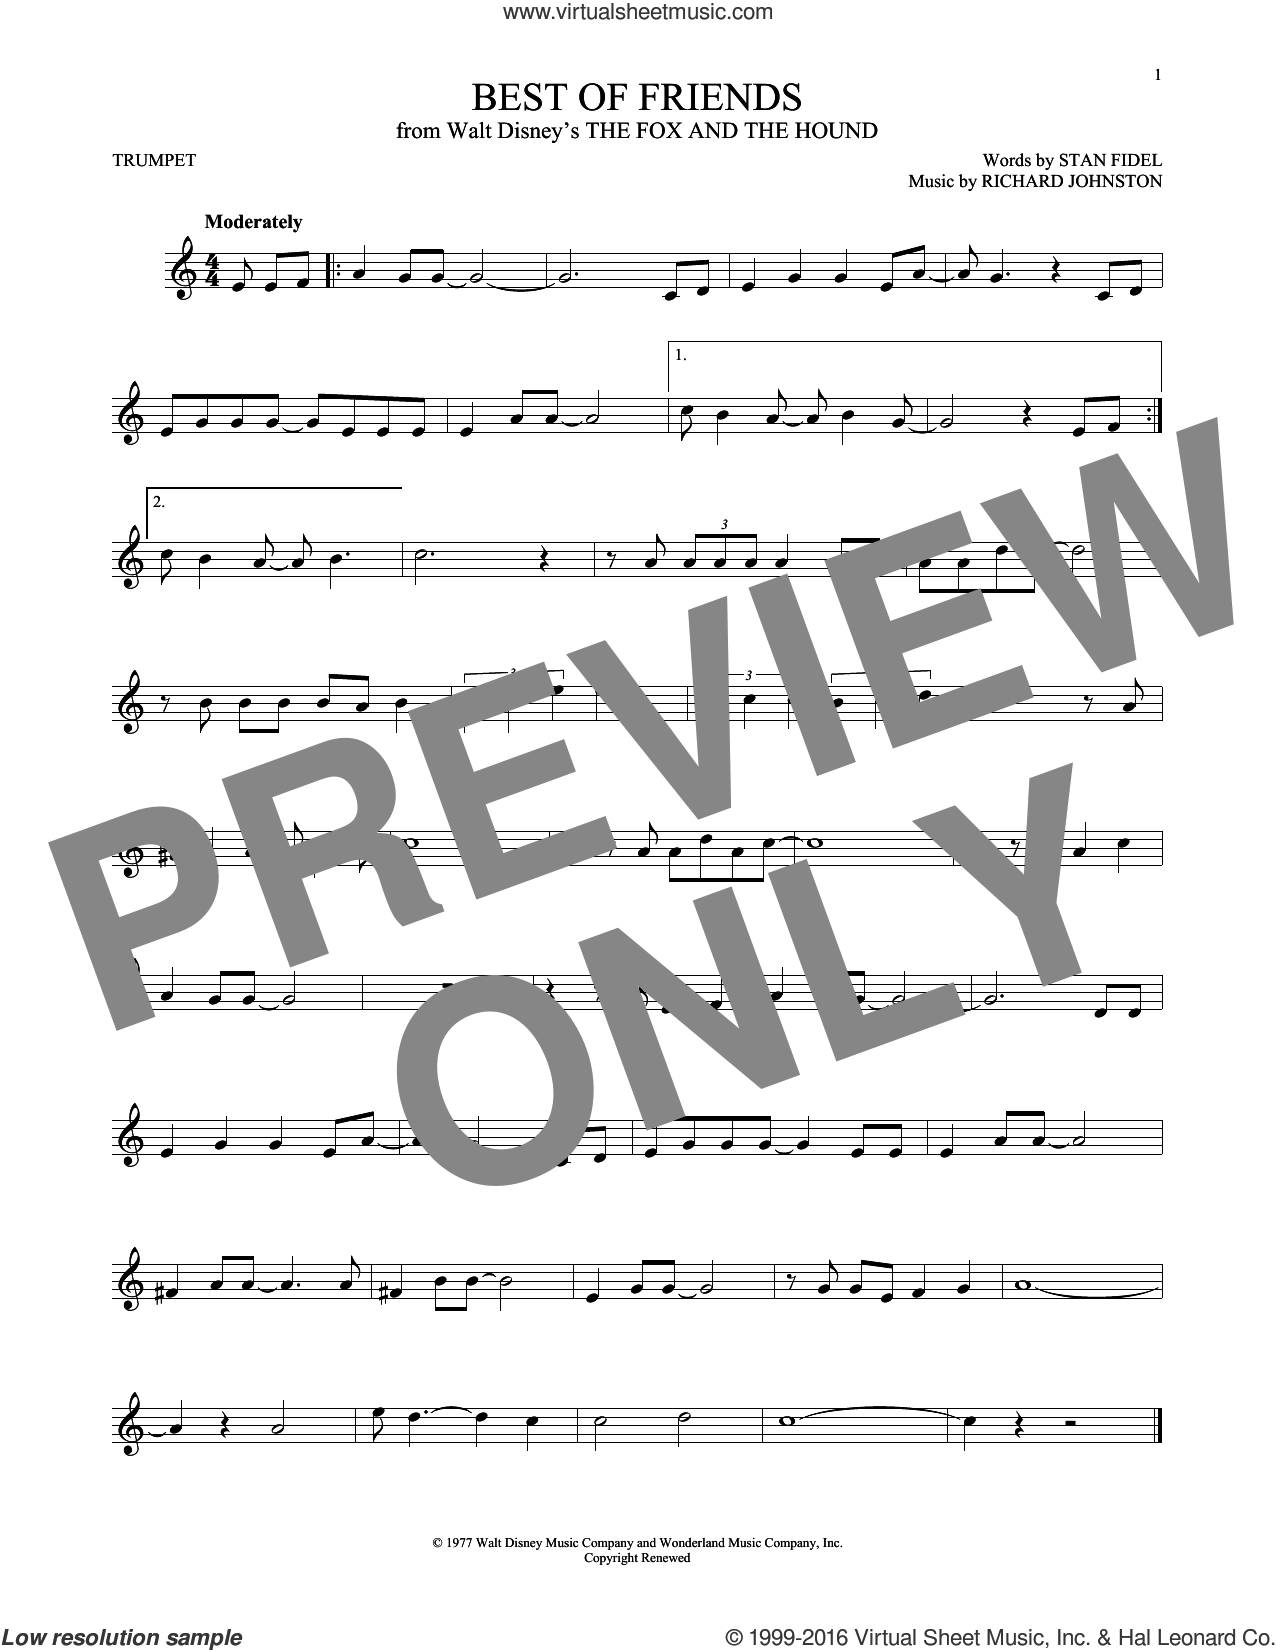 Best Of Friends sheet music for trumpet solo by Richard Johnston and Stan Fidel, intermediate skill level